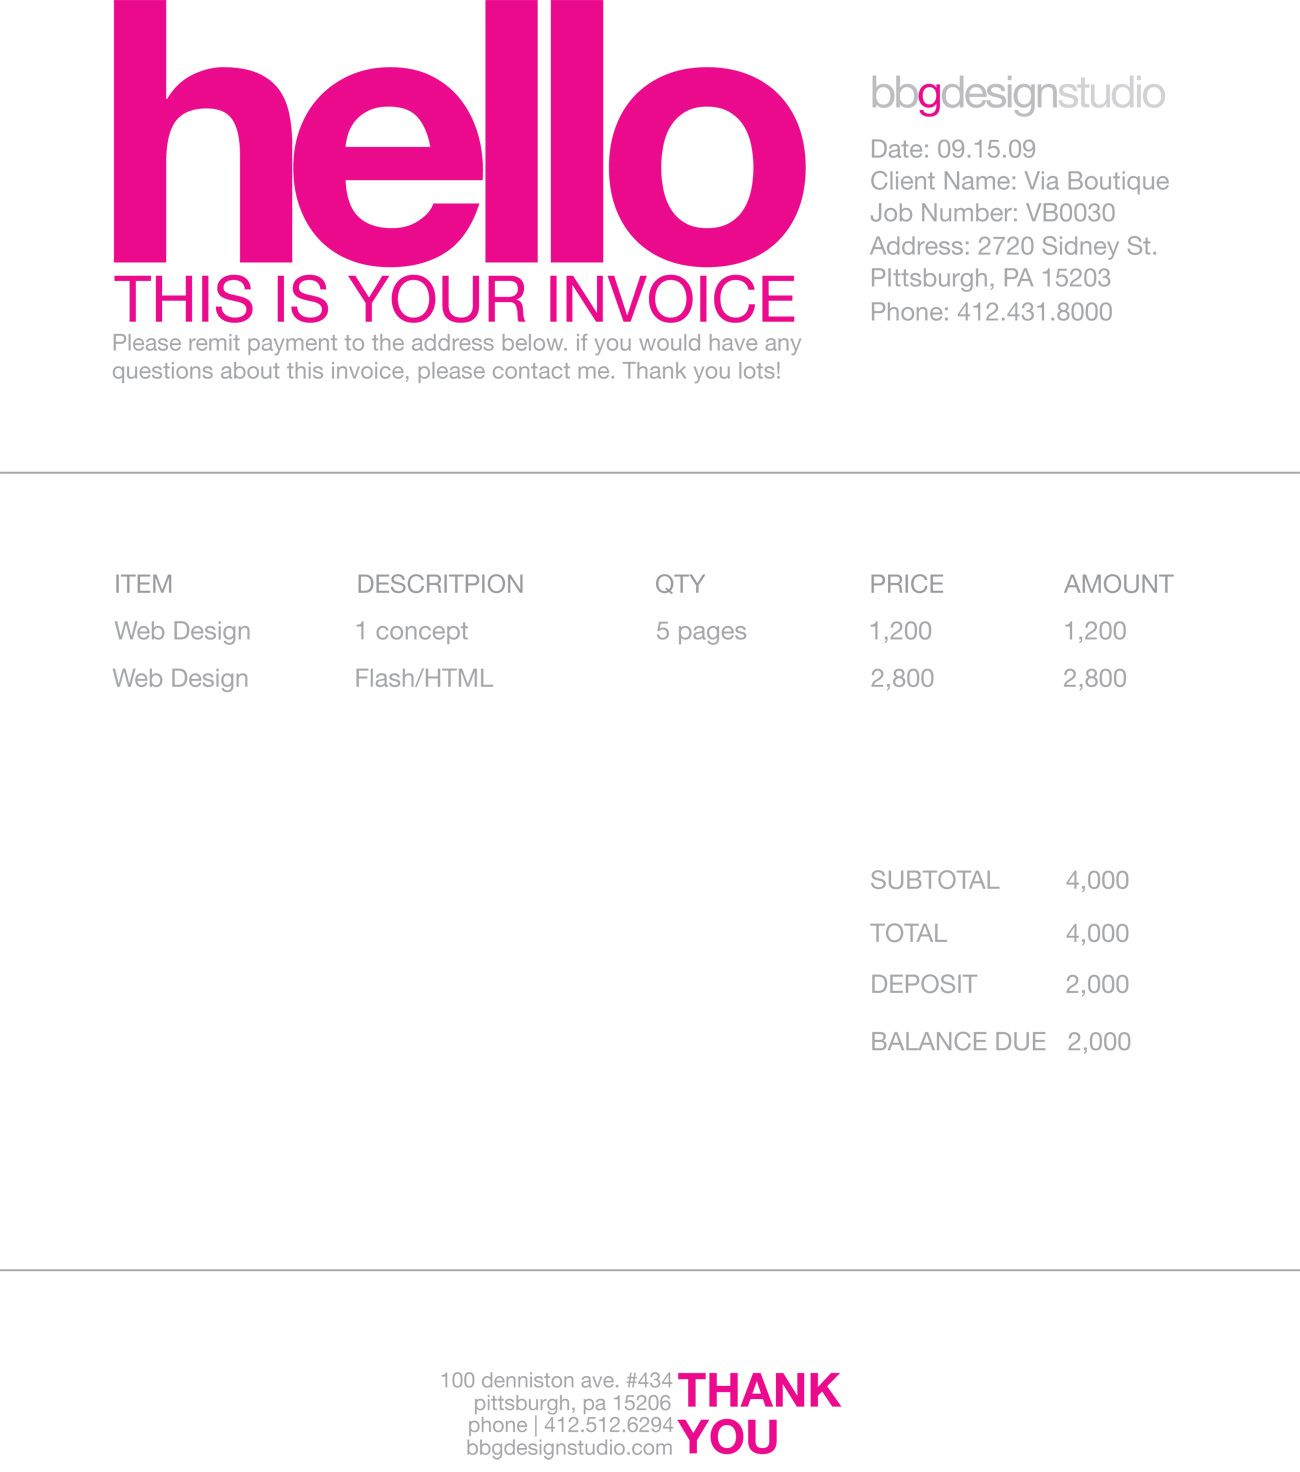 Coachoutletonlineplusus  Surprising  Images About Invoice Design On Pinterest With Goodlooking How To Add A Read Receipt In Gmail Besides Best Buy Return Without A Receipt Furthermore Itunes Receipts With Easy On The Eye Avis E Receipt Also Best Receipt Scanner In Addition Donation Receipt Template And Receipts Squaretrade Com As Well As Avis Receipt Additionally National Toll Receipts From Pinterestcom With Coachoutletonlineplusus  Goodlooking  Images About Invoice Design On Pinterest With Easy On The Eye How To Add A Read Receipt In Gmail Besides Best Buy Return Without A Receipt Furthermore Itunes Receipts And Surprising Avis E Receipt Also Best Receipt Scanner In Addition Donation Receipt Template From Pinterestcom